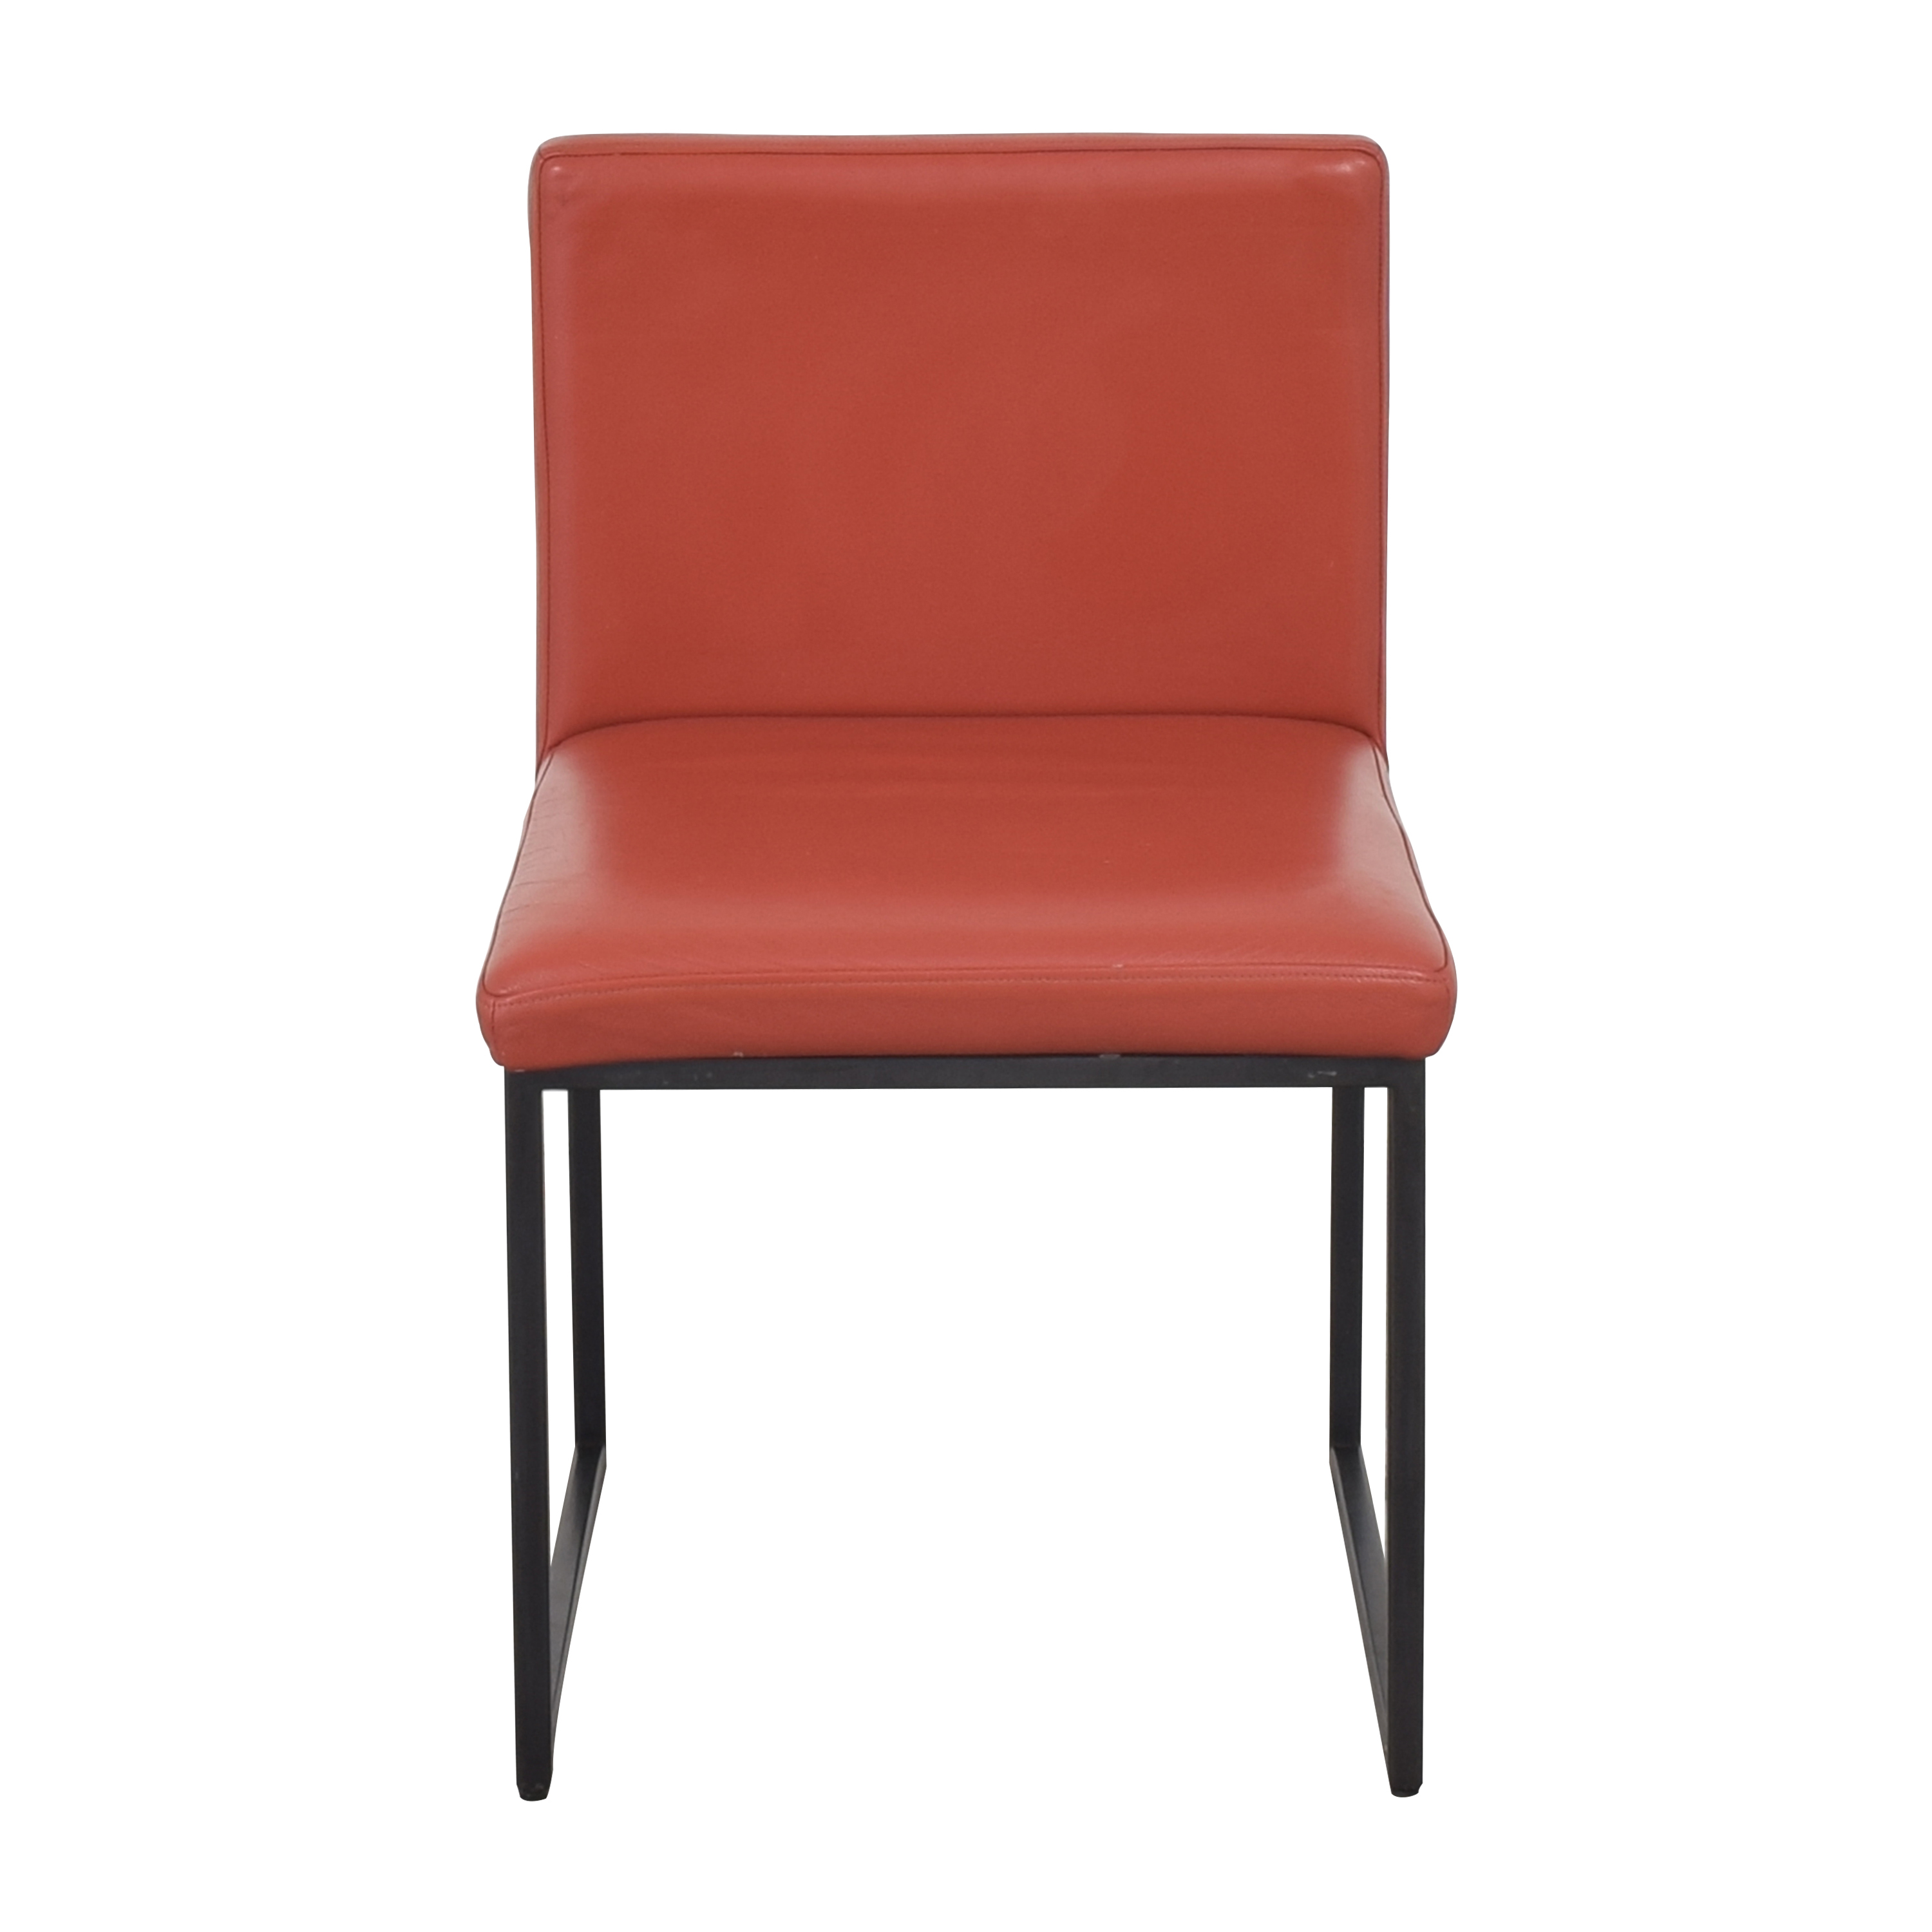 Desiron Suffolk Dining Chair / Dining Chairs